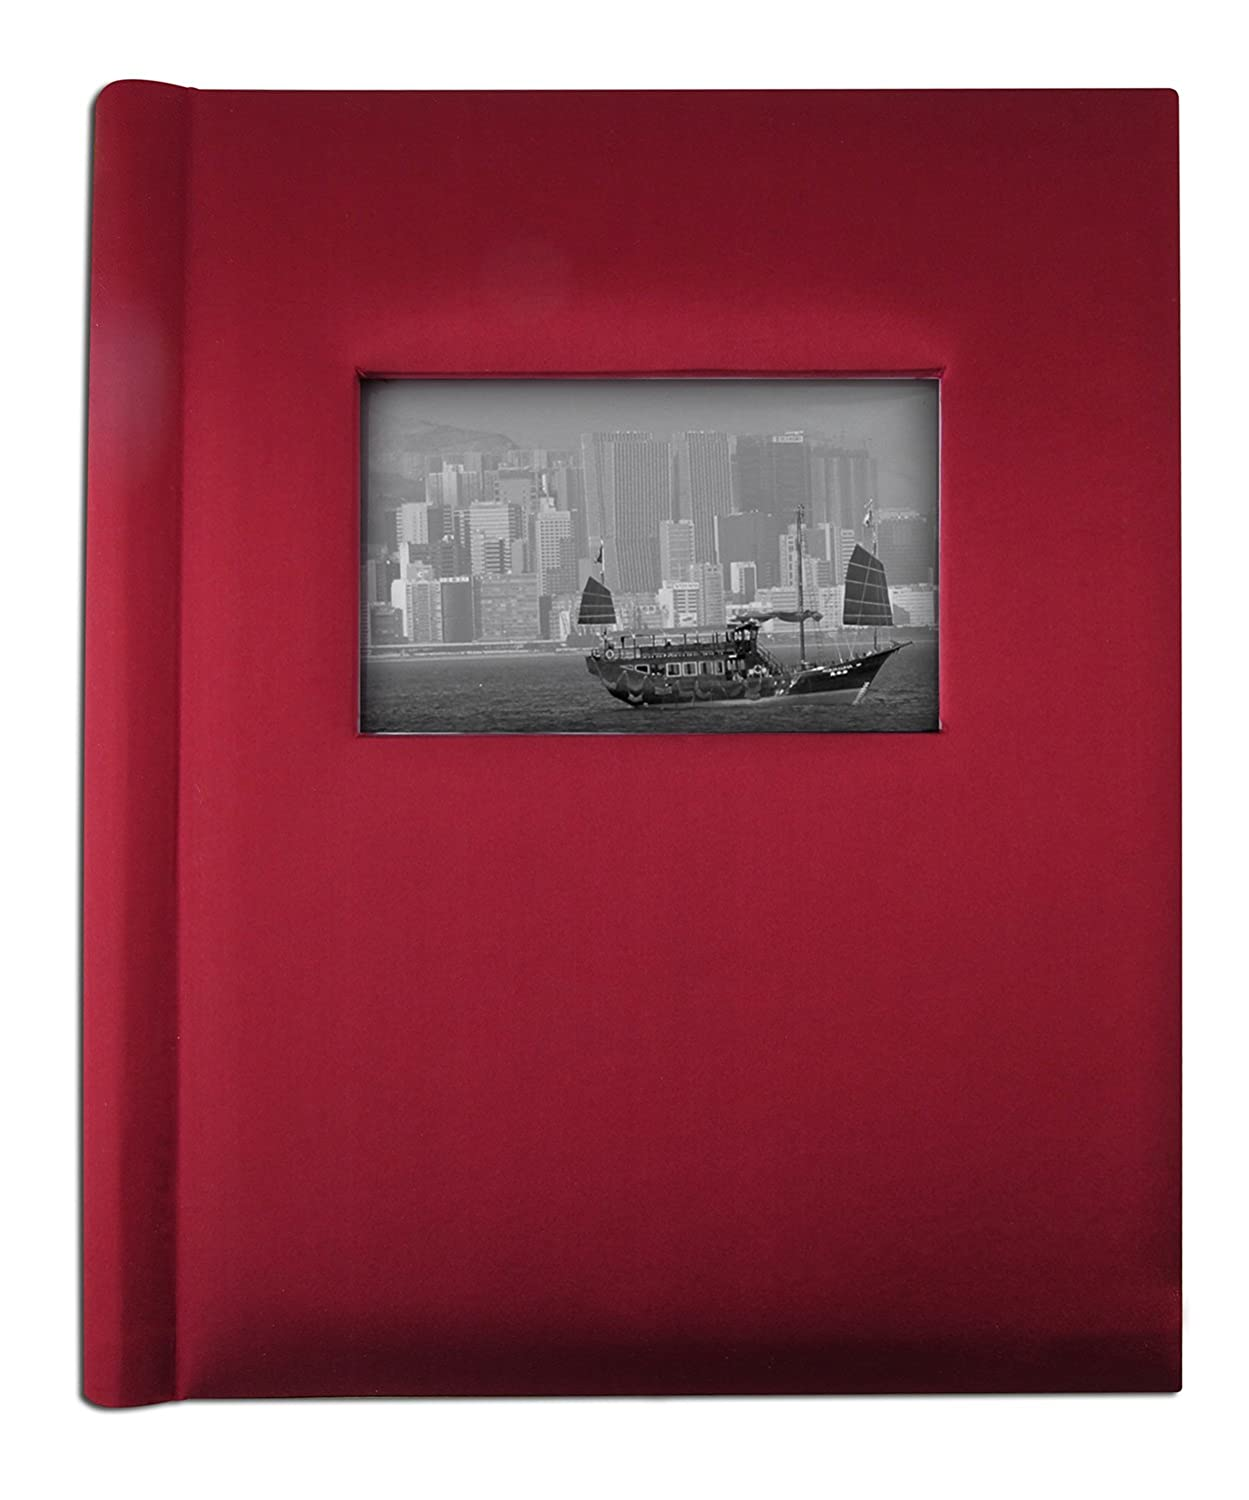 Creat-A-Memory - Family Photo Album + Voice Recording Scrapbook + Talking Milestone Journal + Perfect Gift For Anniversary, Vacations, Wedding + 20 Pages + 9in x 12in + Red Satin Xtech (HK) Limited CAM200RD